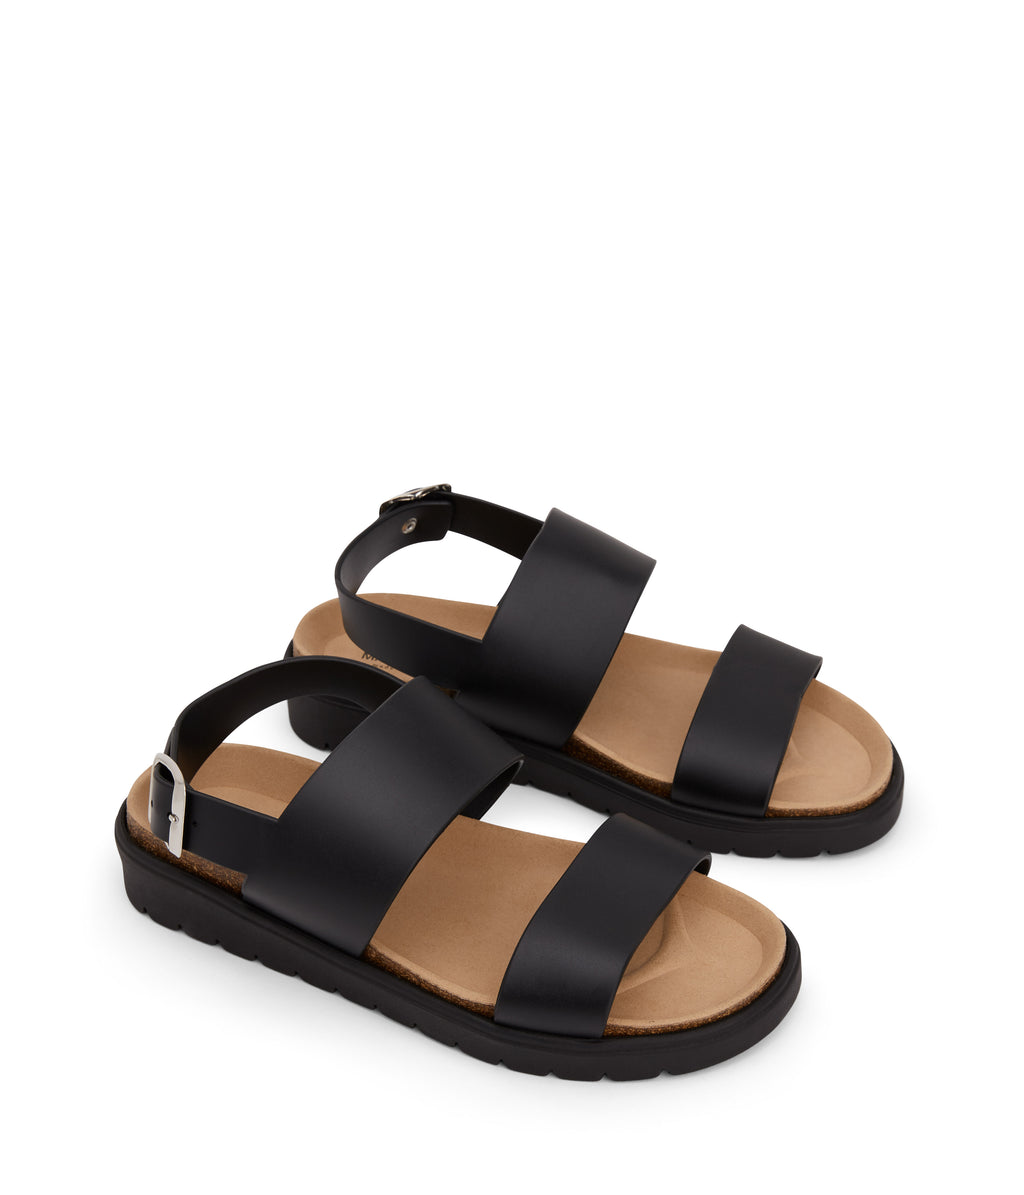 Matt & Nat ASHAI Sandals